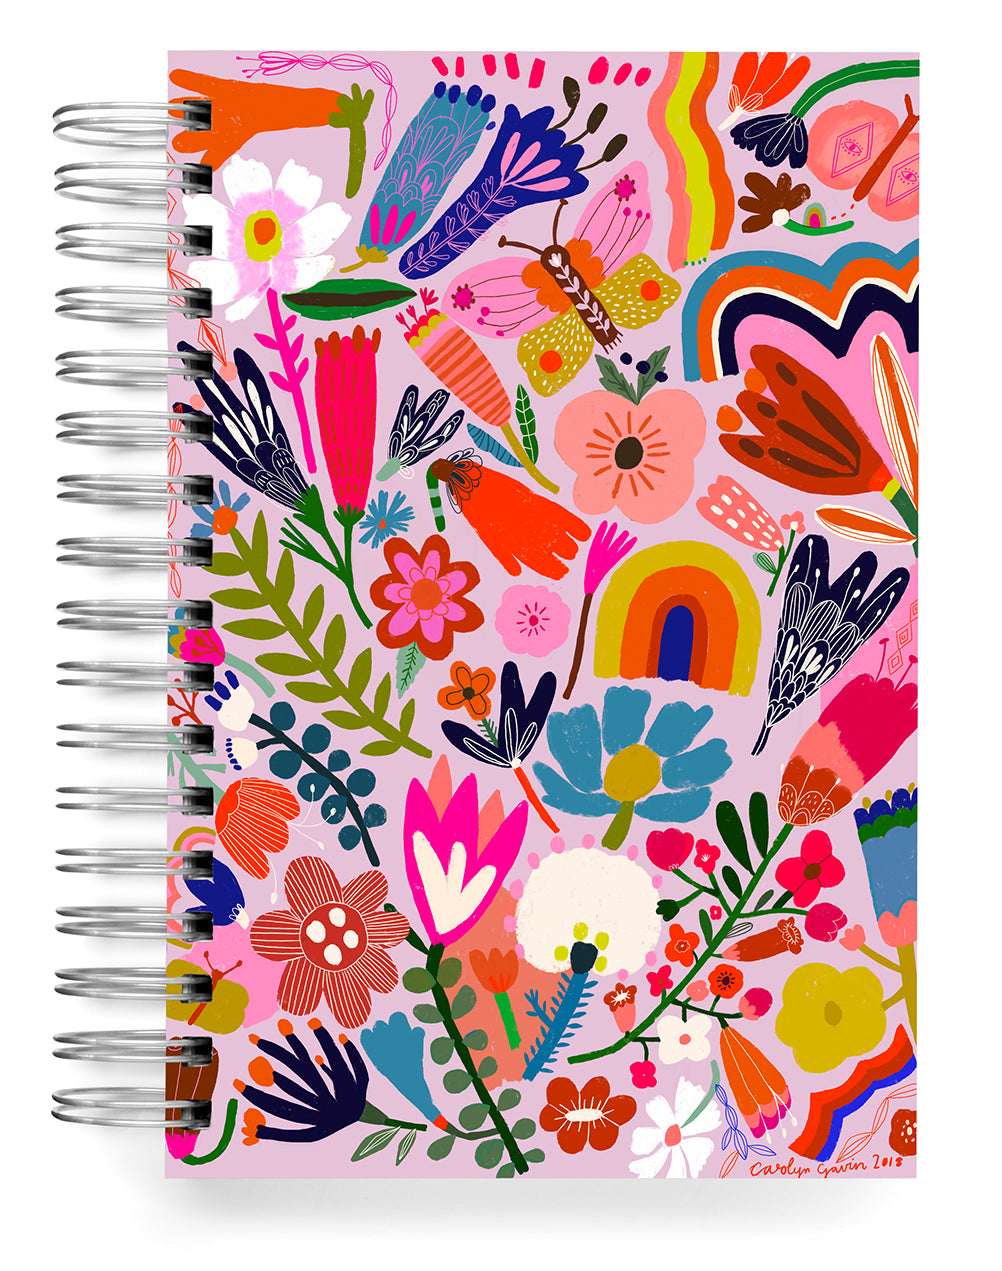 Flower Power Jumbo Journal